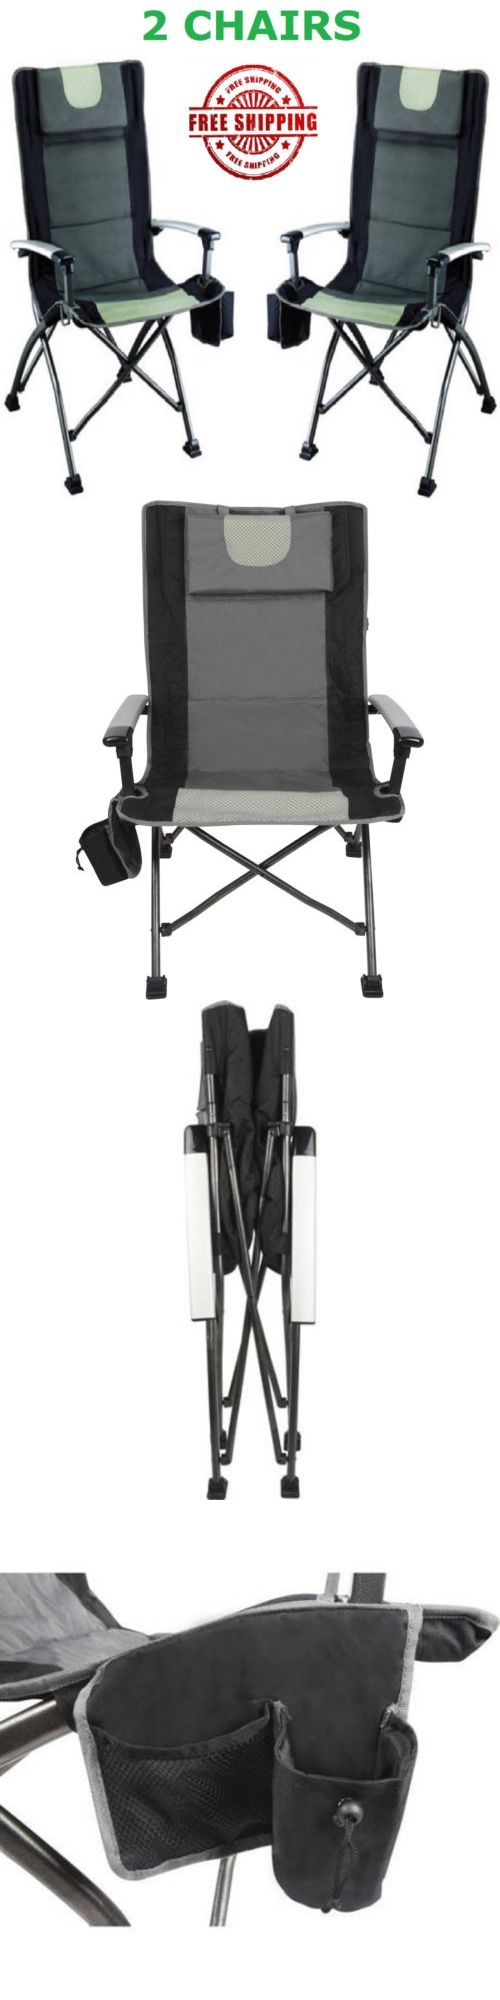 Camping Furniture 16038 Portable Folding Camping Chair Outdoor Folding Chairs Fishing Beach High Back Buy